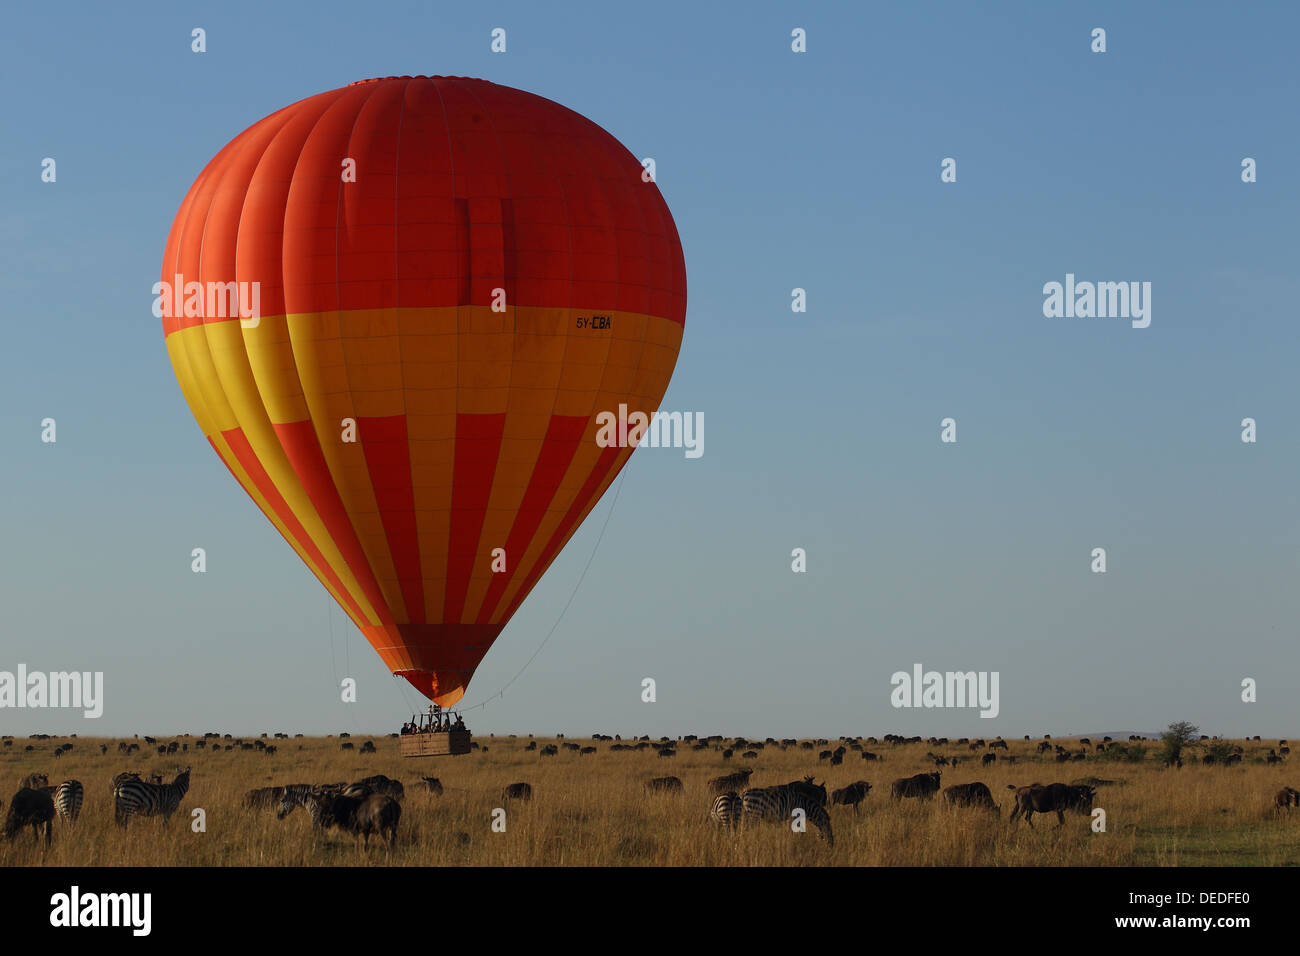 Hot Air Balloon Safari in Masai Mara, Kenya, Africa Stock Photo